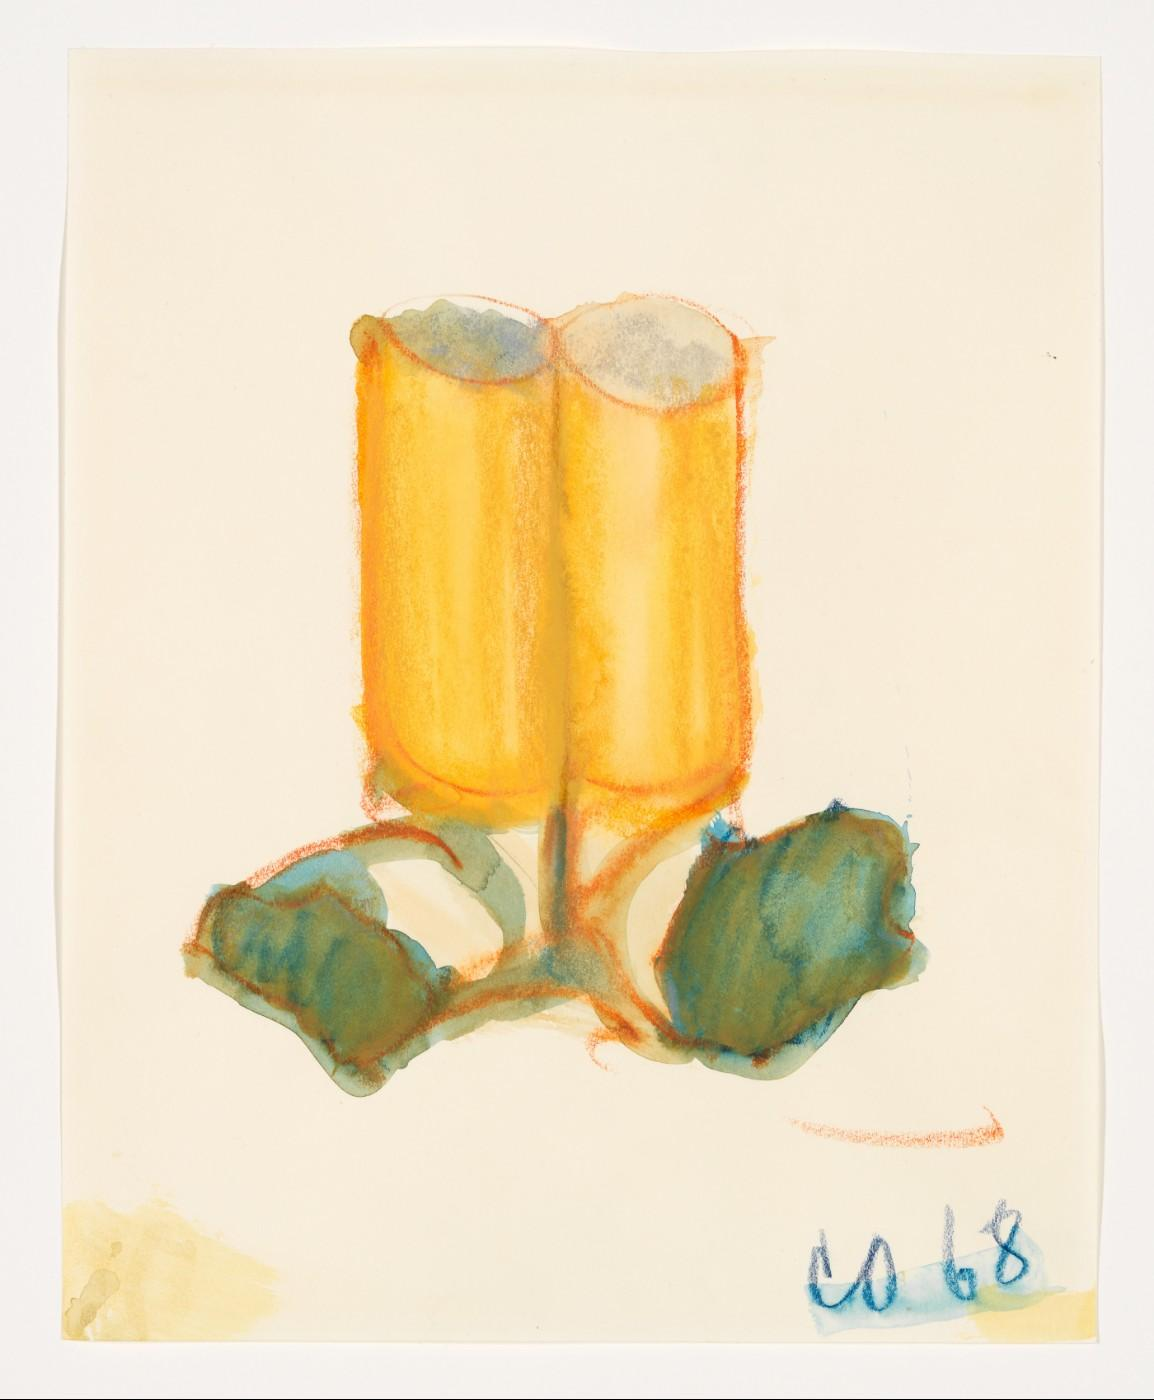 Claes Oldenburg, Two Fagends Together, ll, 1968